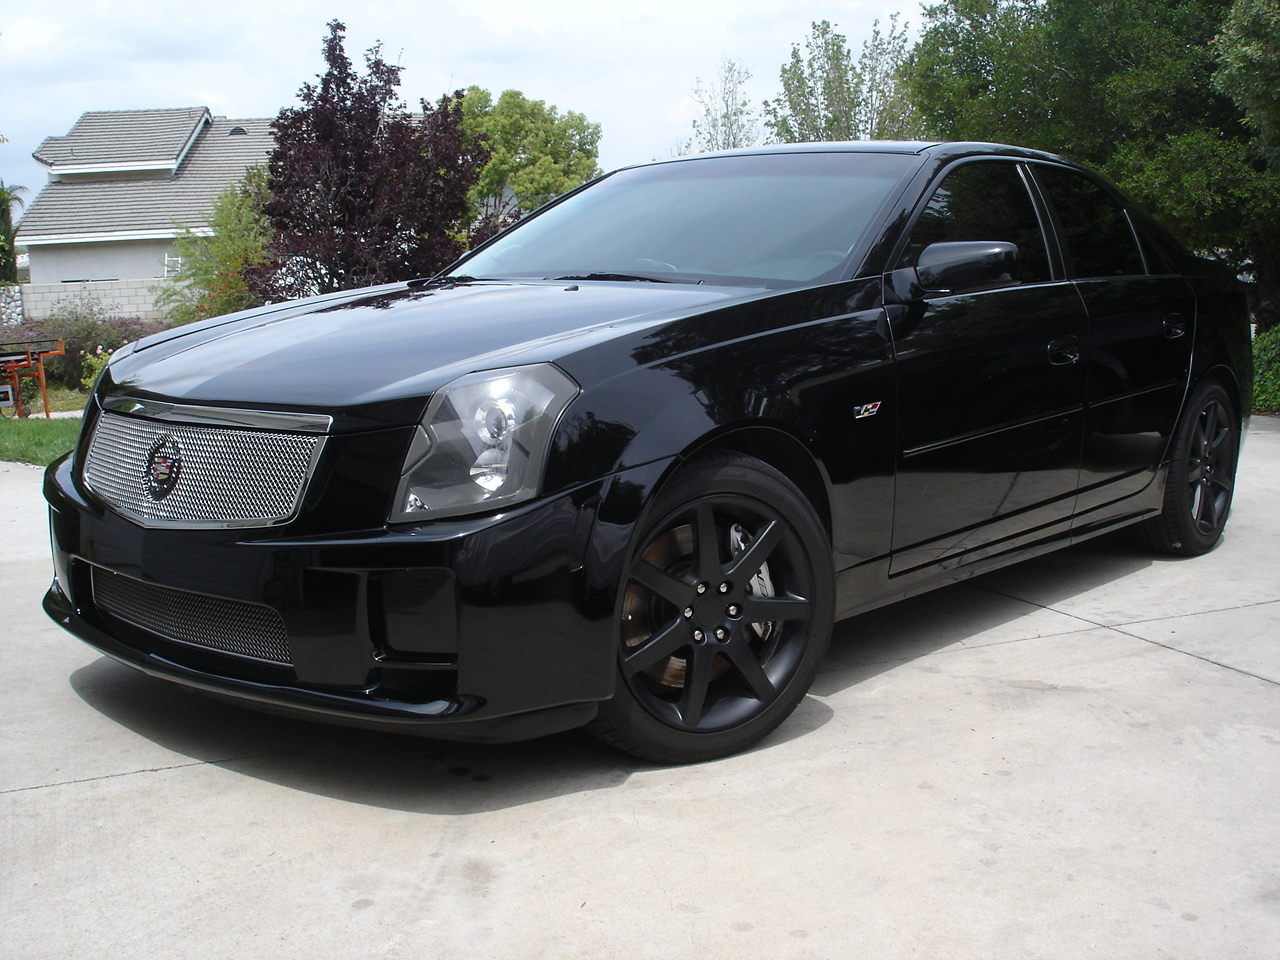 cadillac cts 2005 images